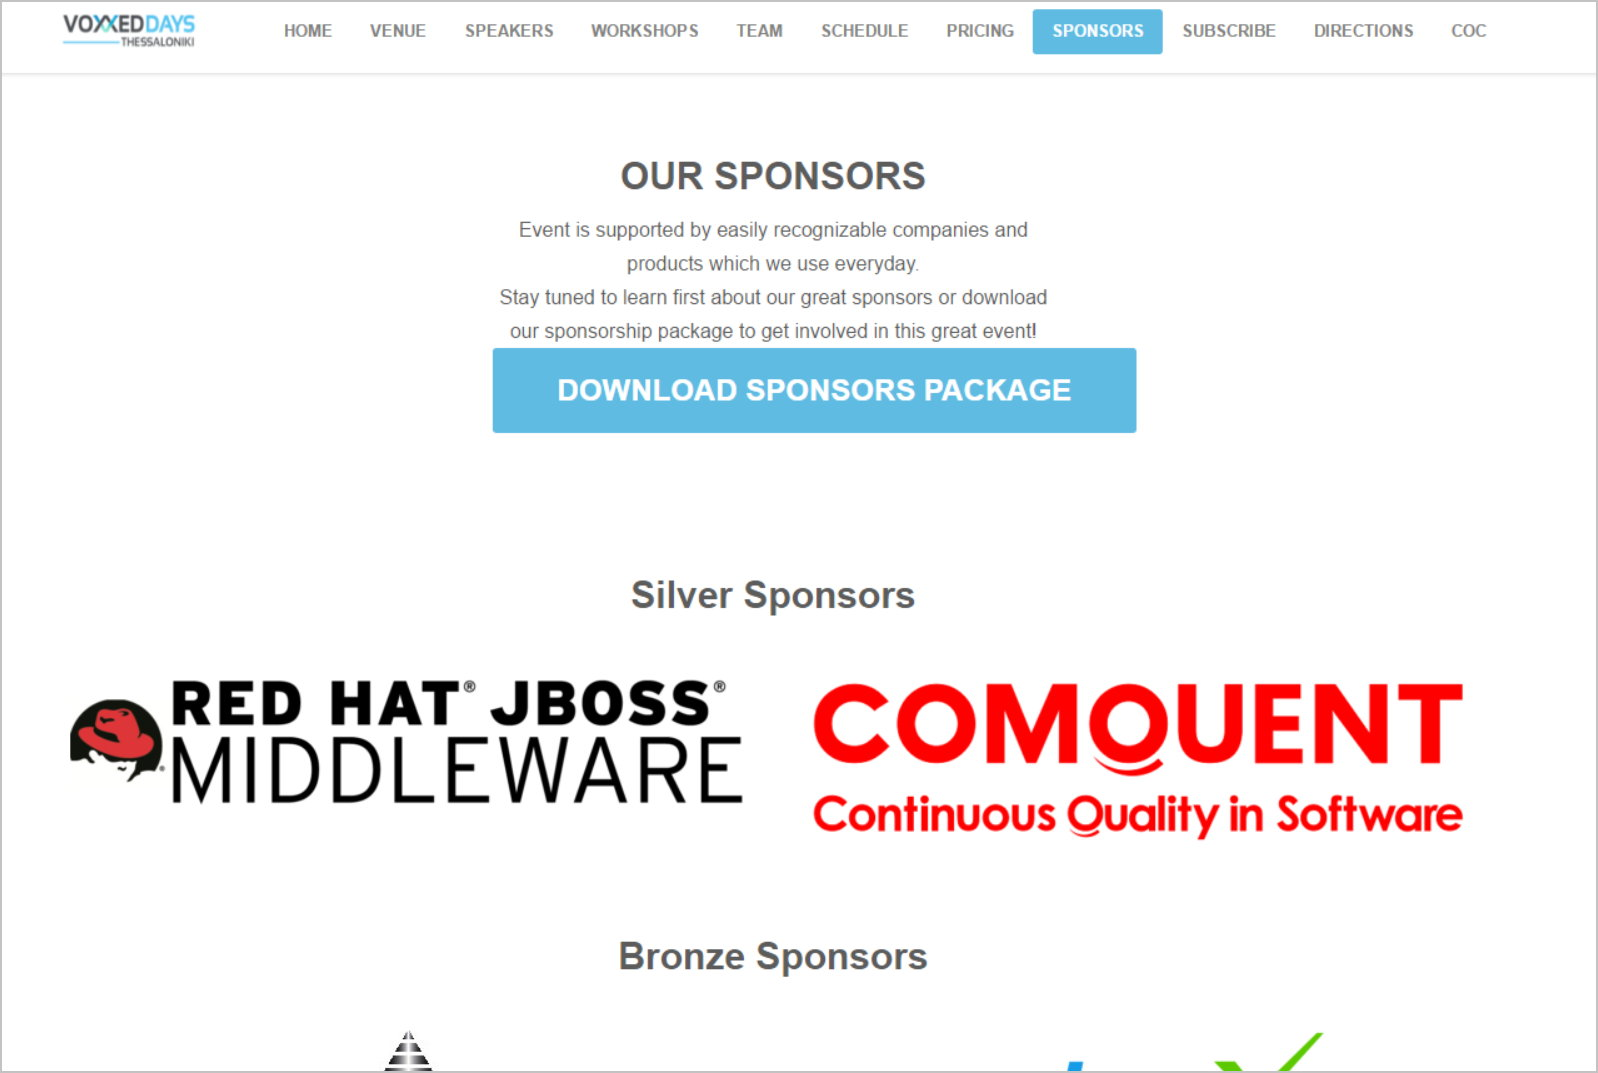 Quality Management, Testmanagement, Testautomation, Continuous Integration and Delivery, Jenkins, Consulting, Training, Auditing